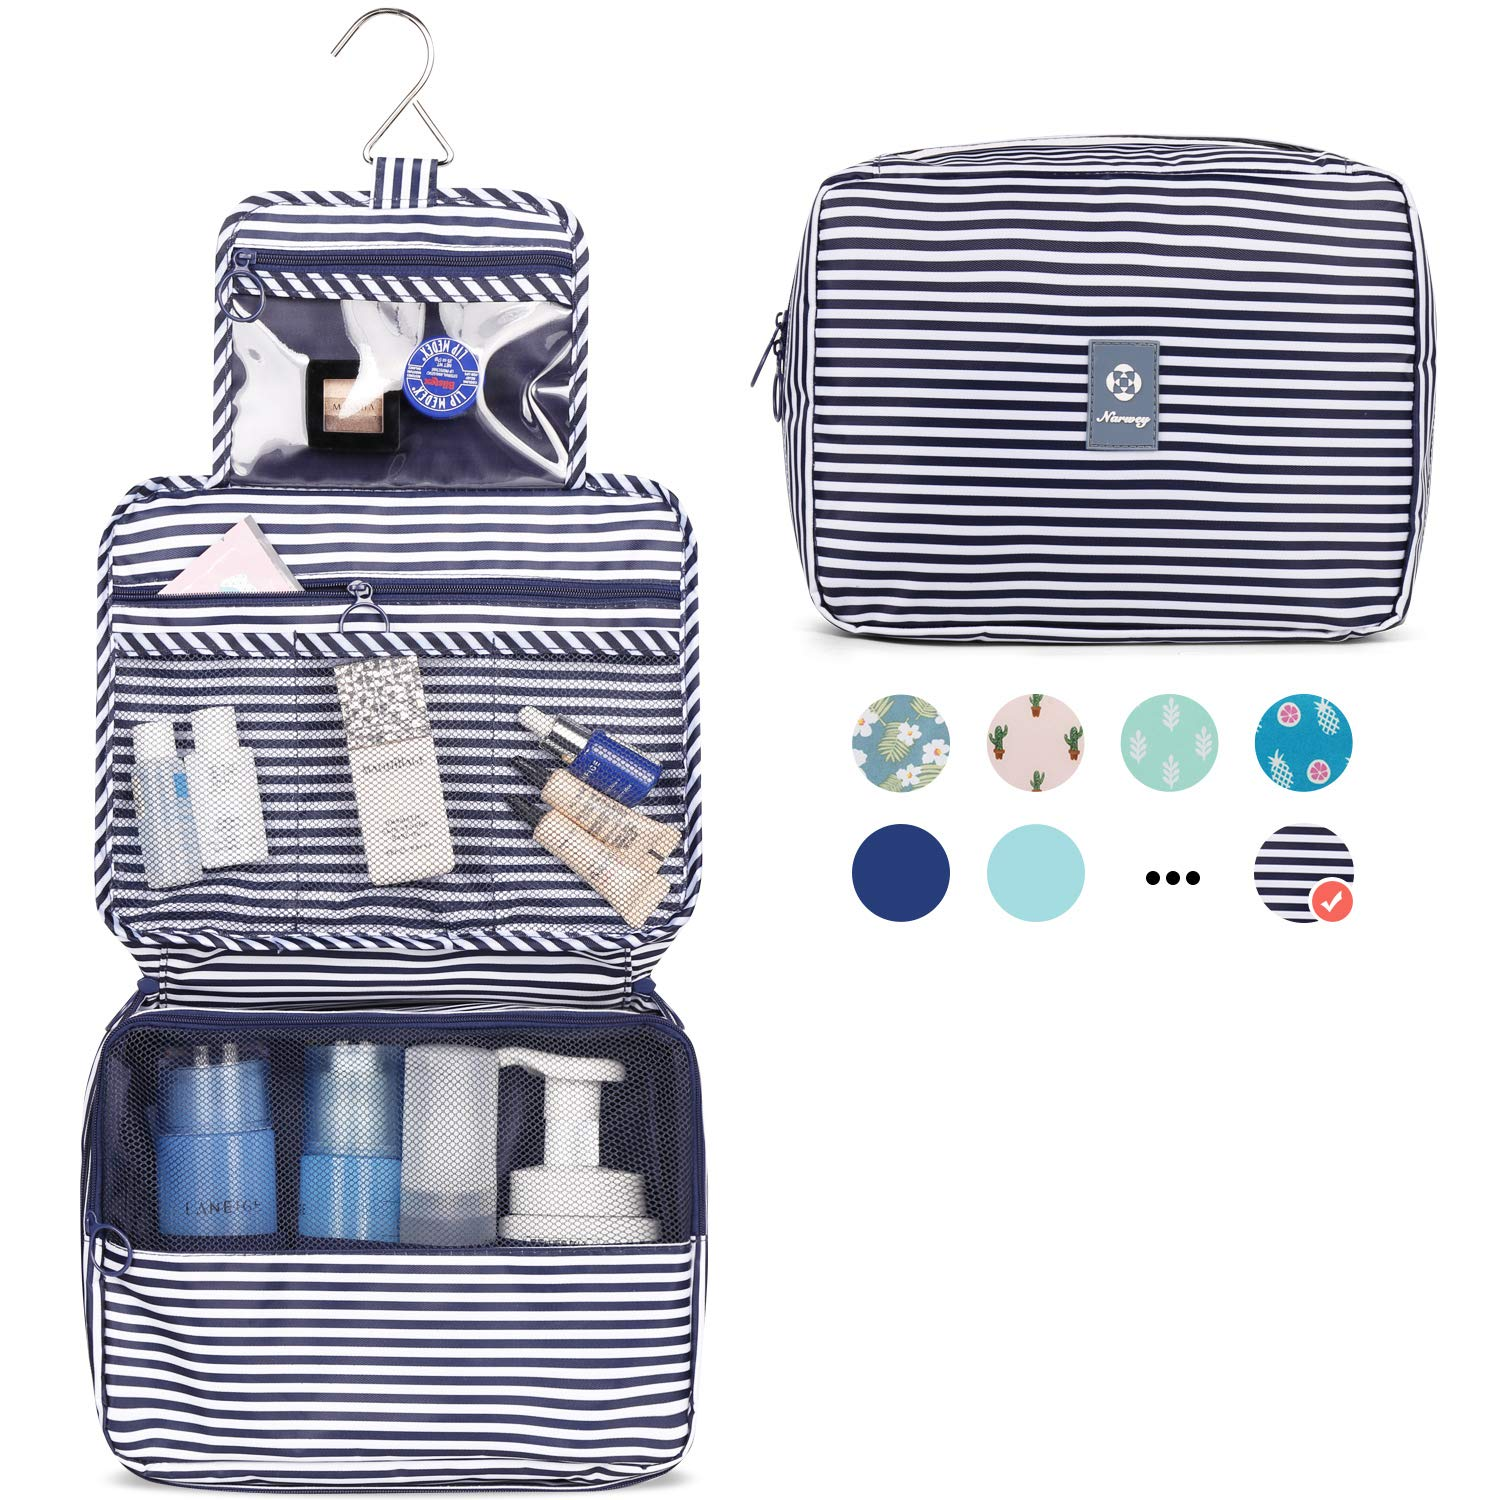 Hanging Travel Toiletry Bag Cosmetic Make up Organizer for Women and Girls Waterproof (B-Blue Stripe)